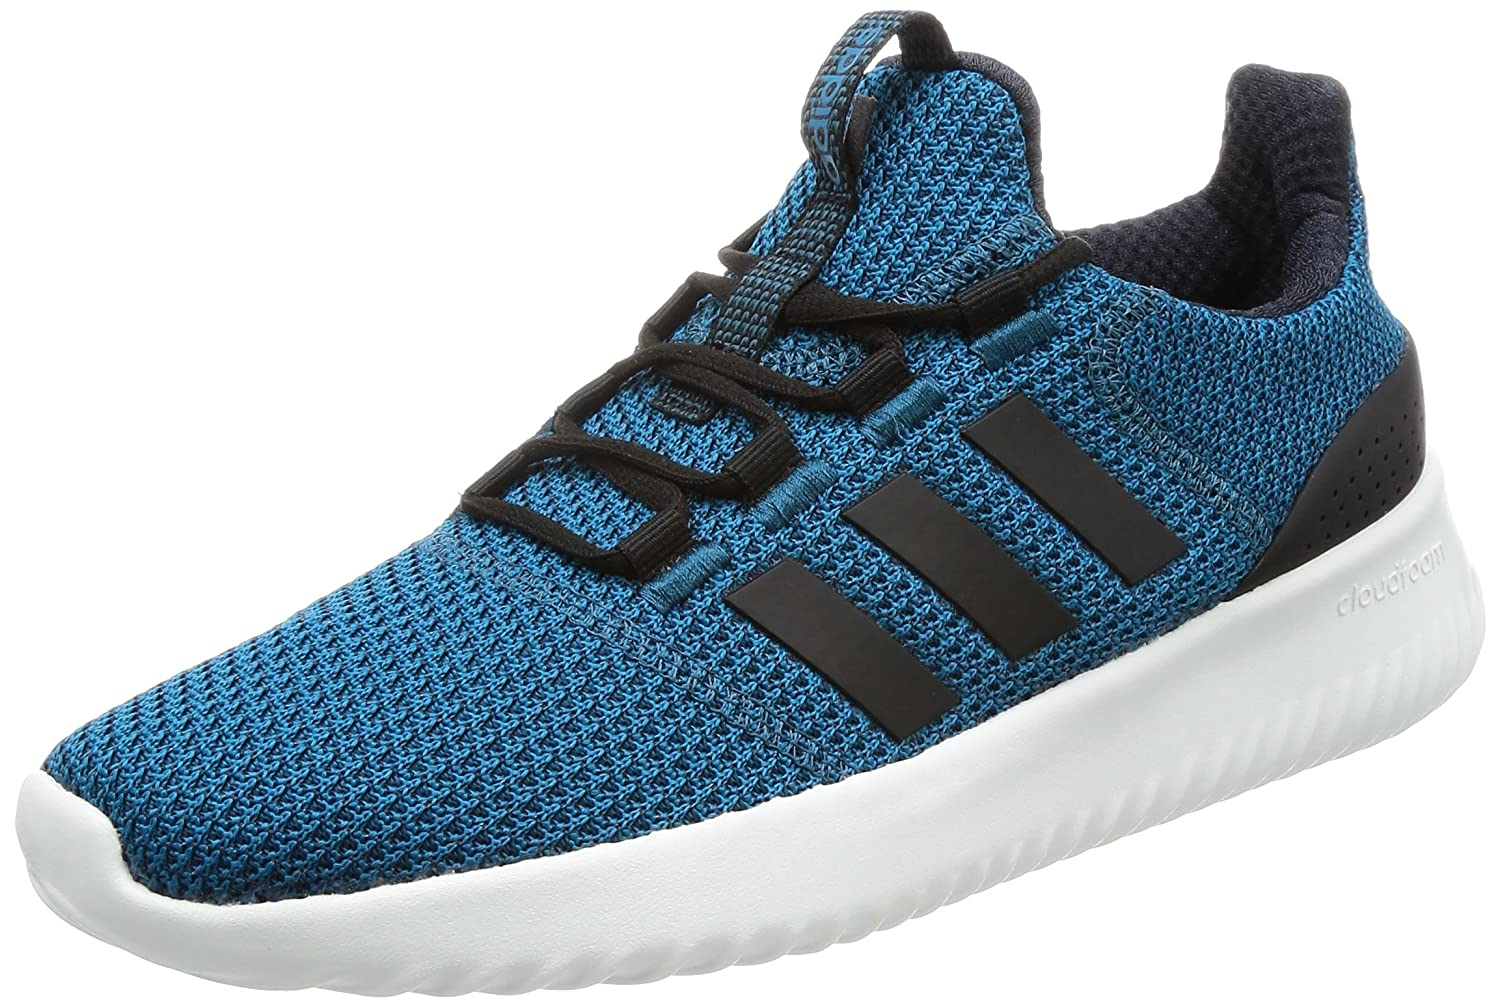 super popular 7c3ee 186c8 adidas neo Mens Cloudfoam Ultimate MyspetPetnitPetnit Running Shoes - 9  UKIndia (43.33 EU) Buy Online at Low Prices in India - Amazon.in